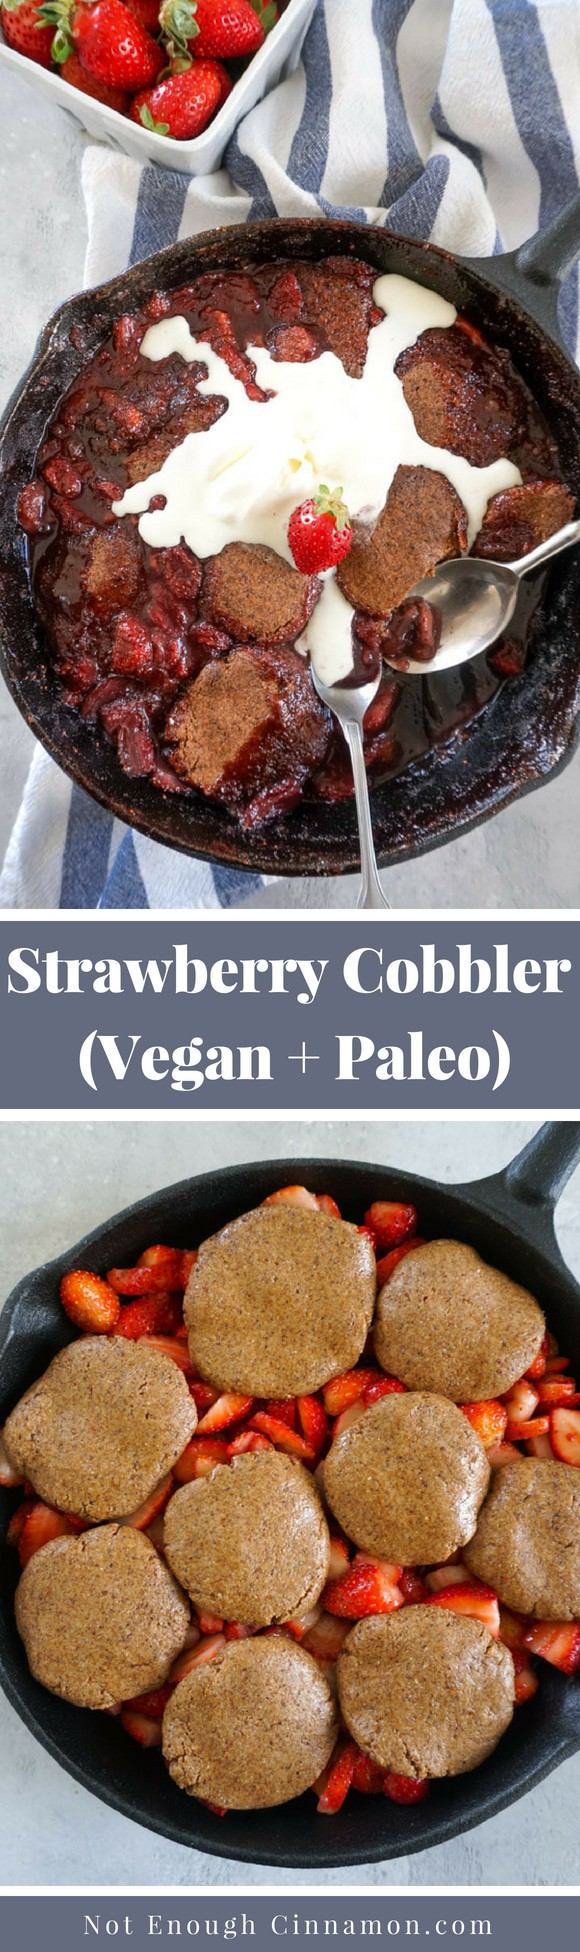 A healthy cobbler made with fresh strawberries. No refined sugar, no flour, no butter but a maximum of flavors for this #vegan and #paleo summer dessert! Recipe on NotEnoughCinnamon.com